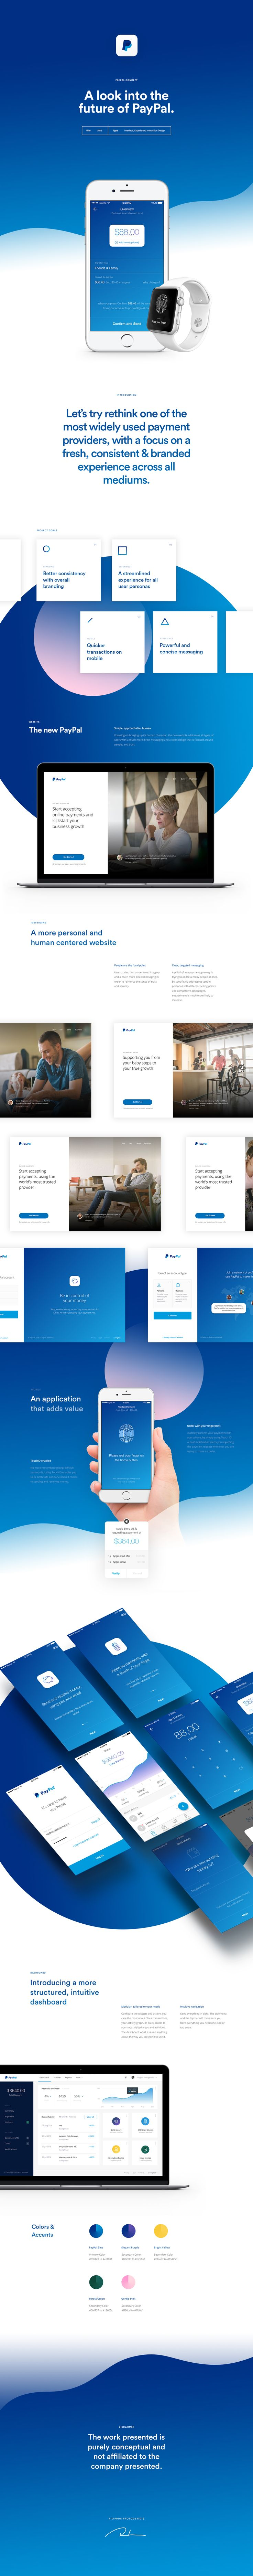 PayPal - Concept Redesign on Behance